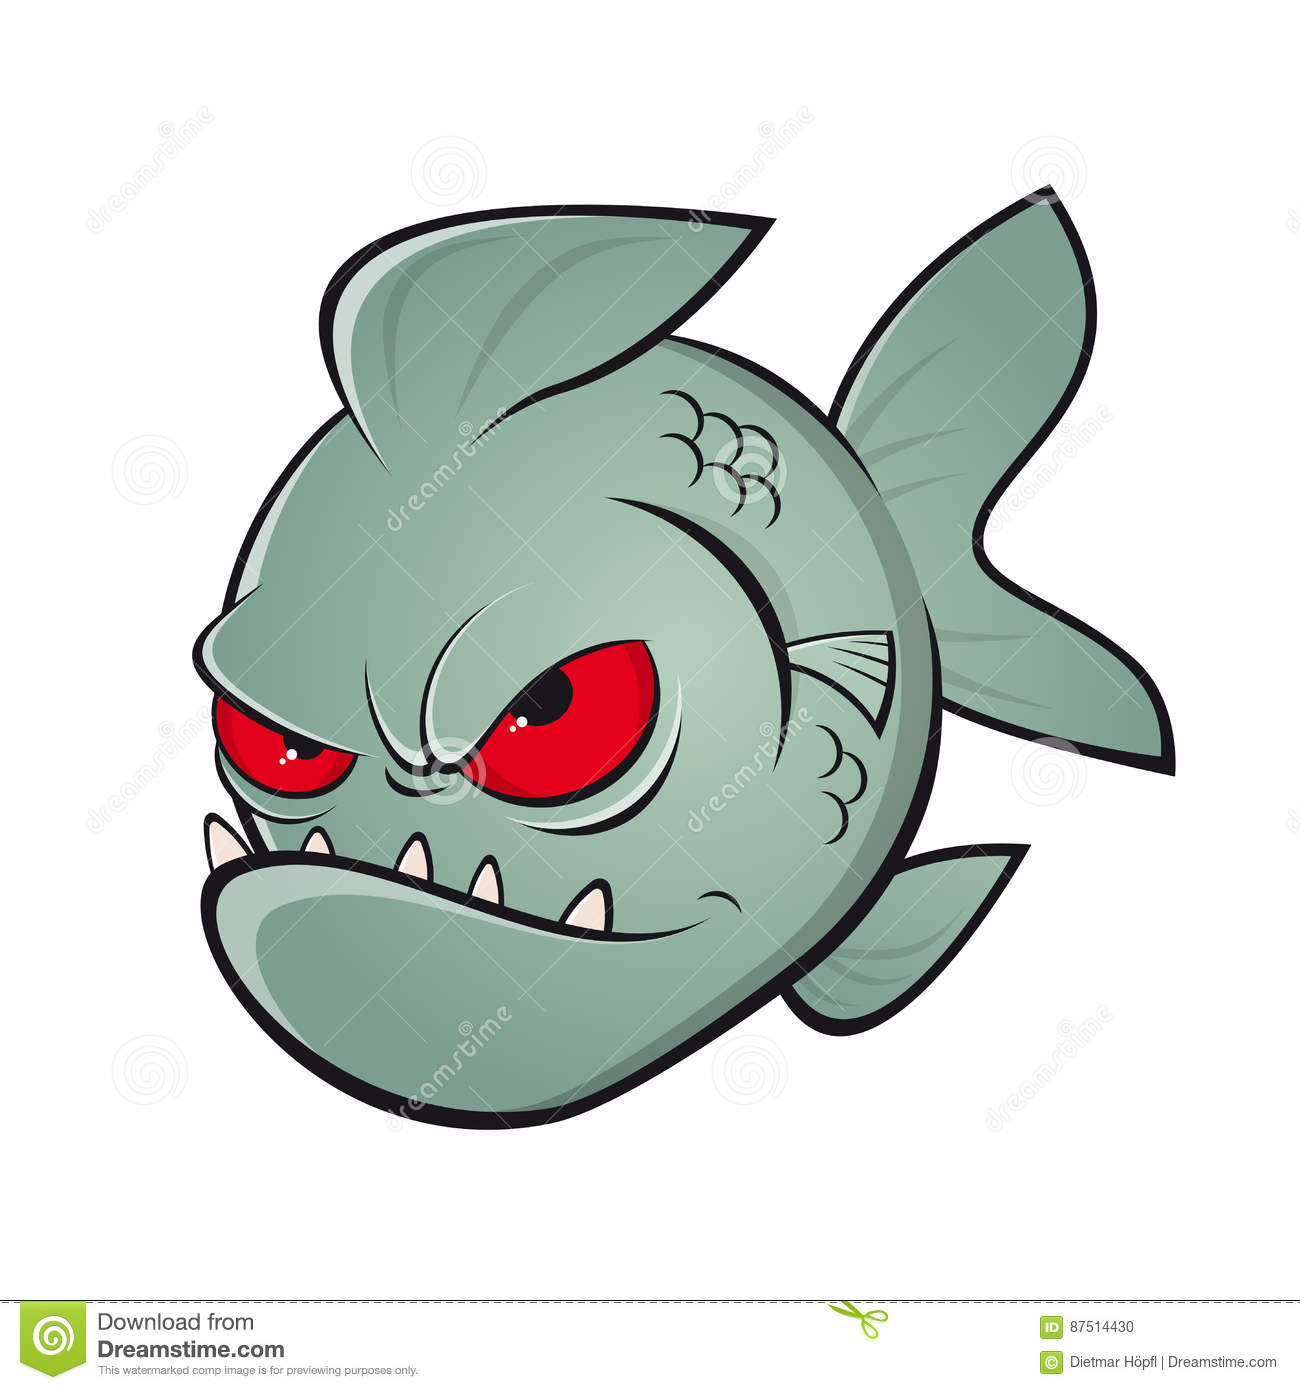 Angry cartoon piranha stock vector. Illustration of dangerous.